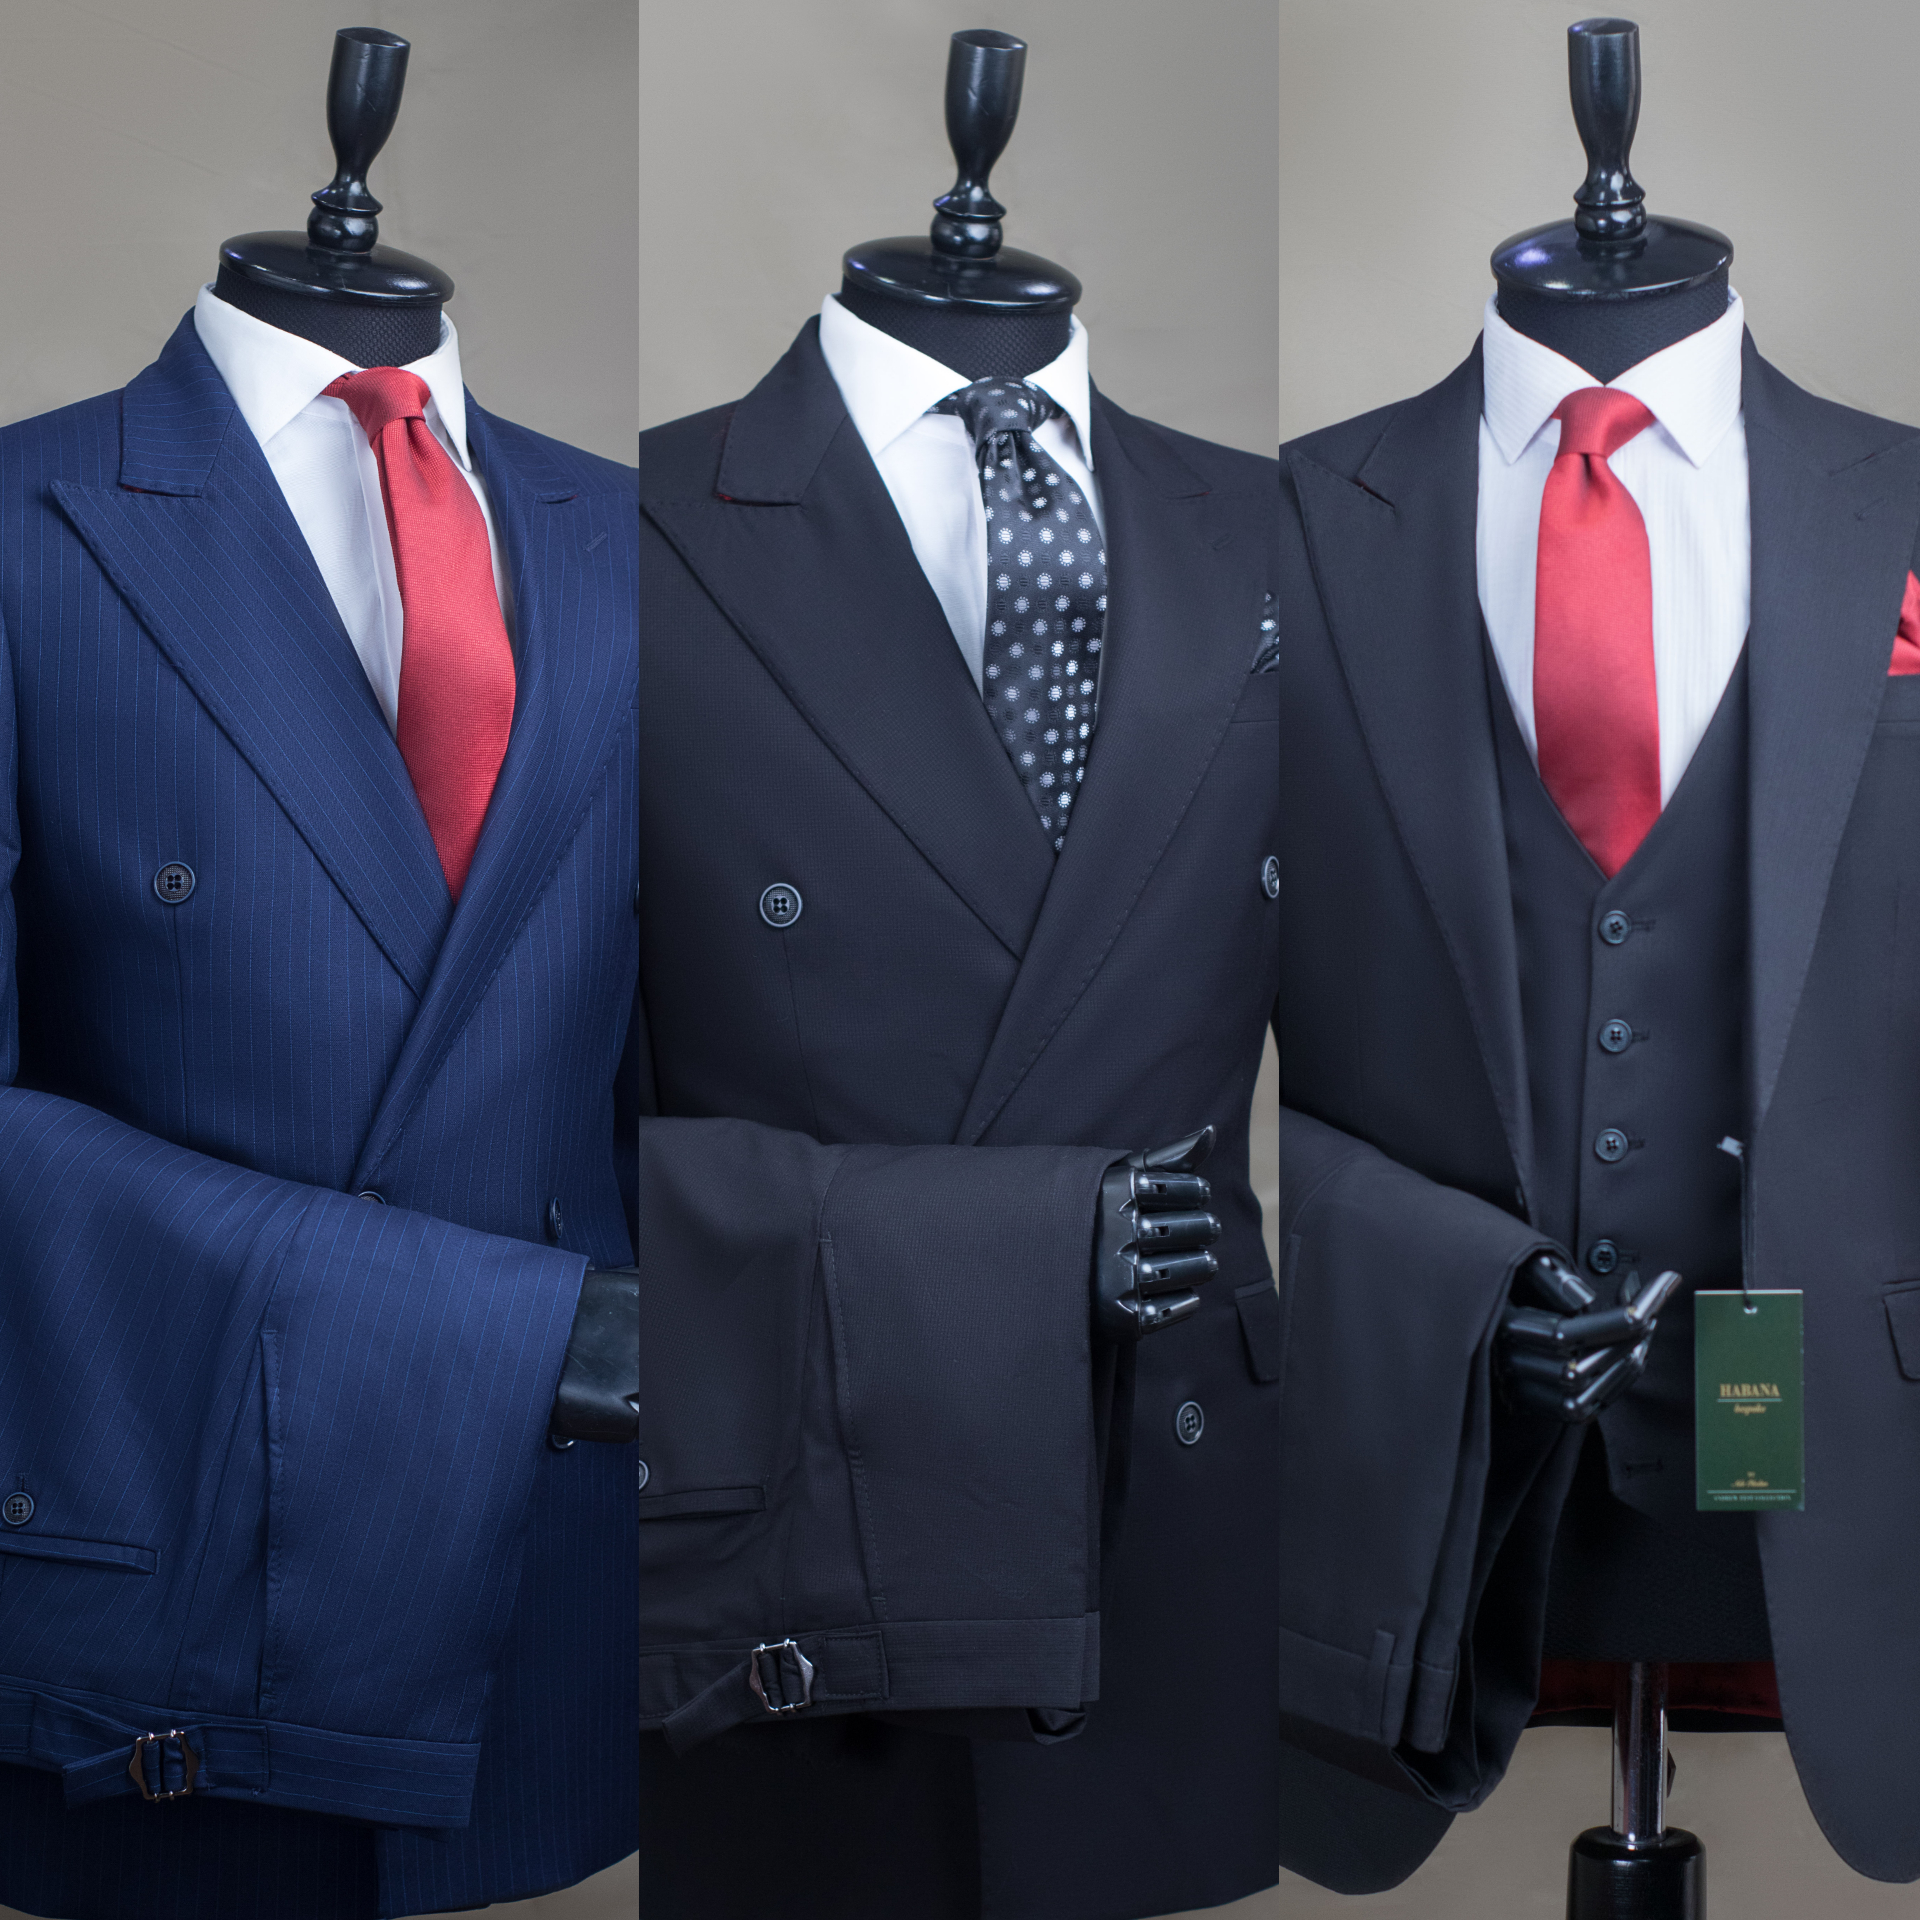 A SUIT IS THE UNIFORM OF SUCCESS AND ELEGANCE